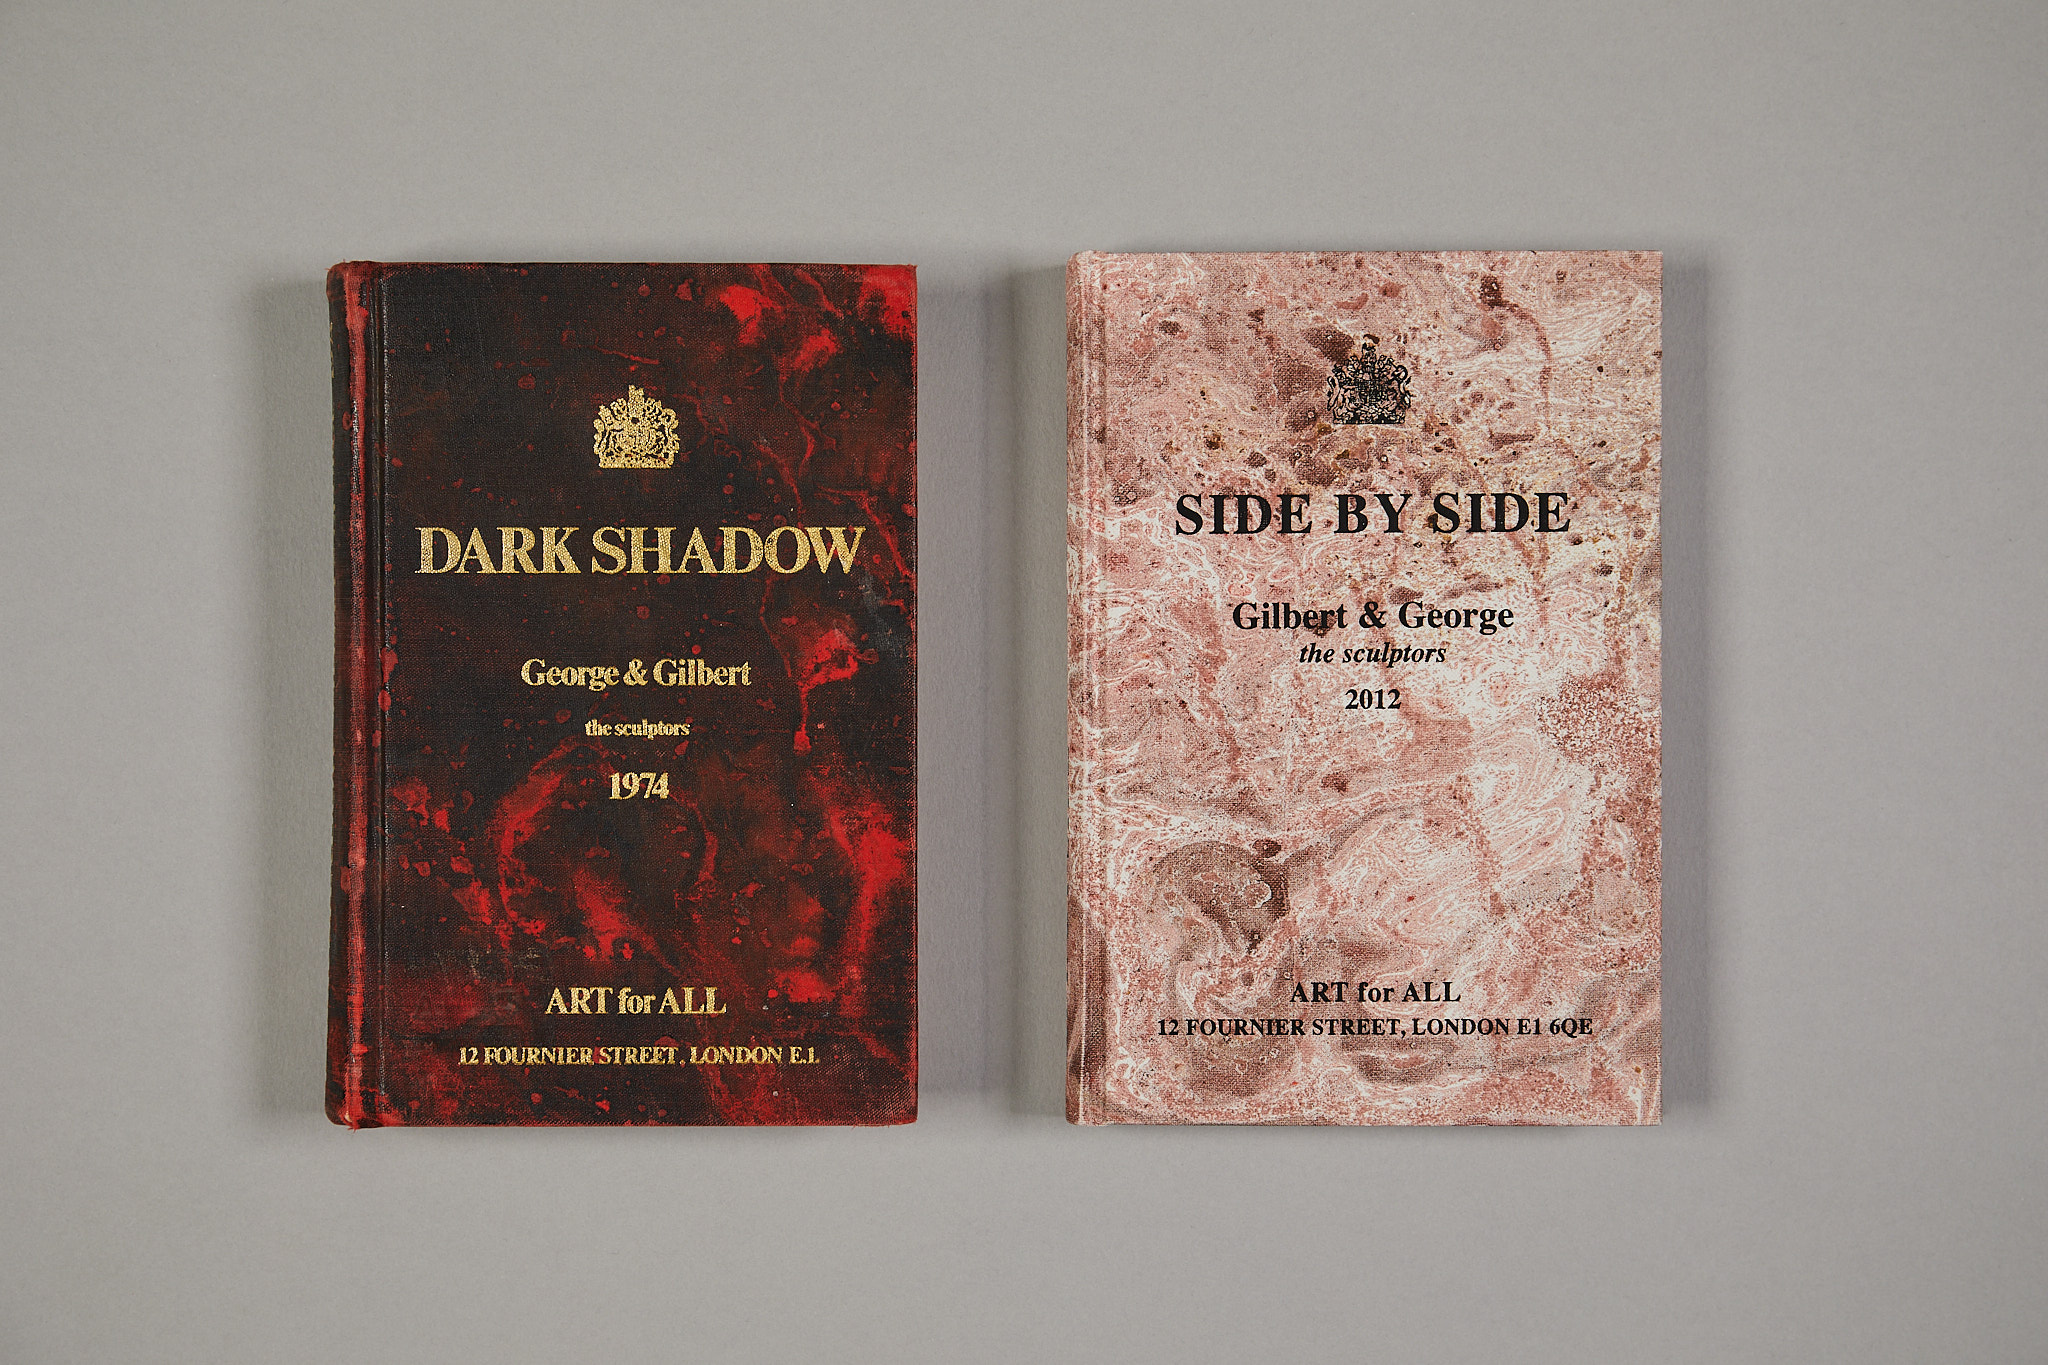 Dark shadow: Gilbert and George the sculptors